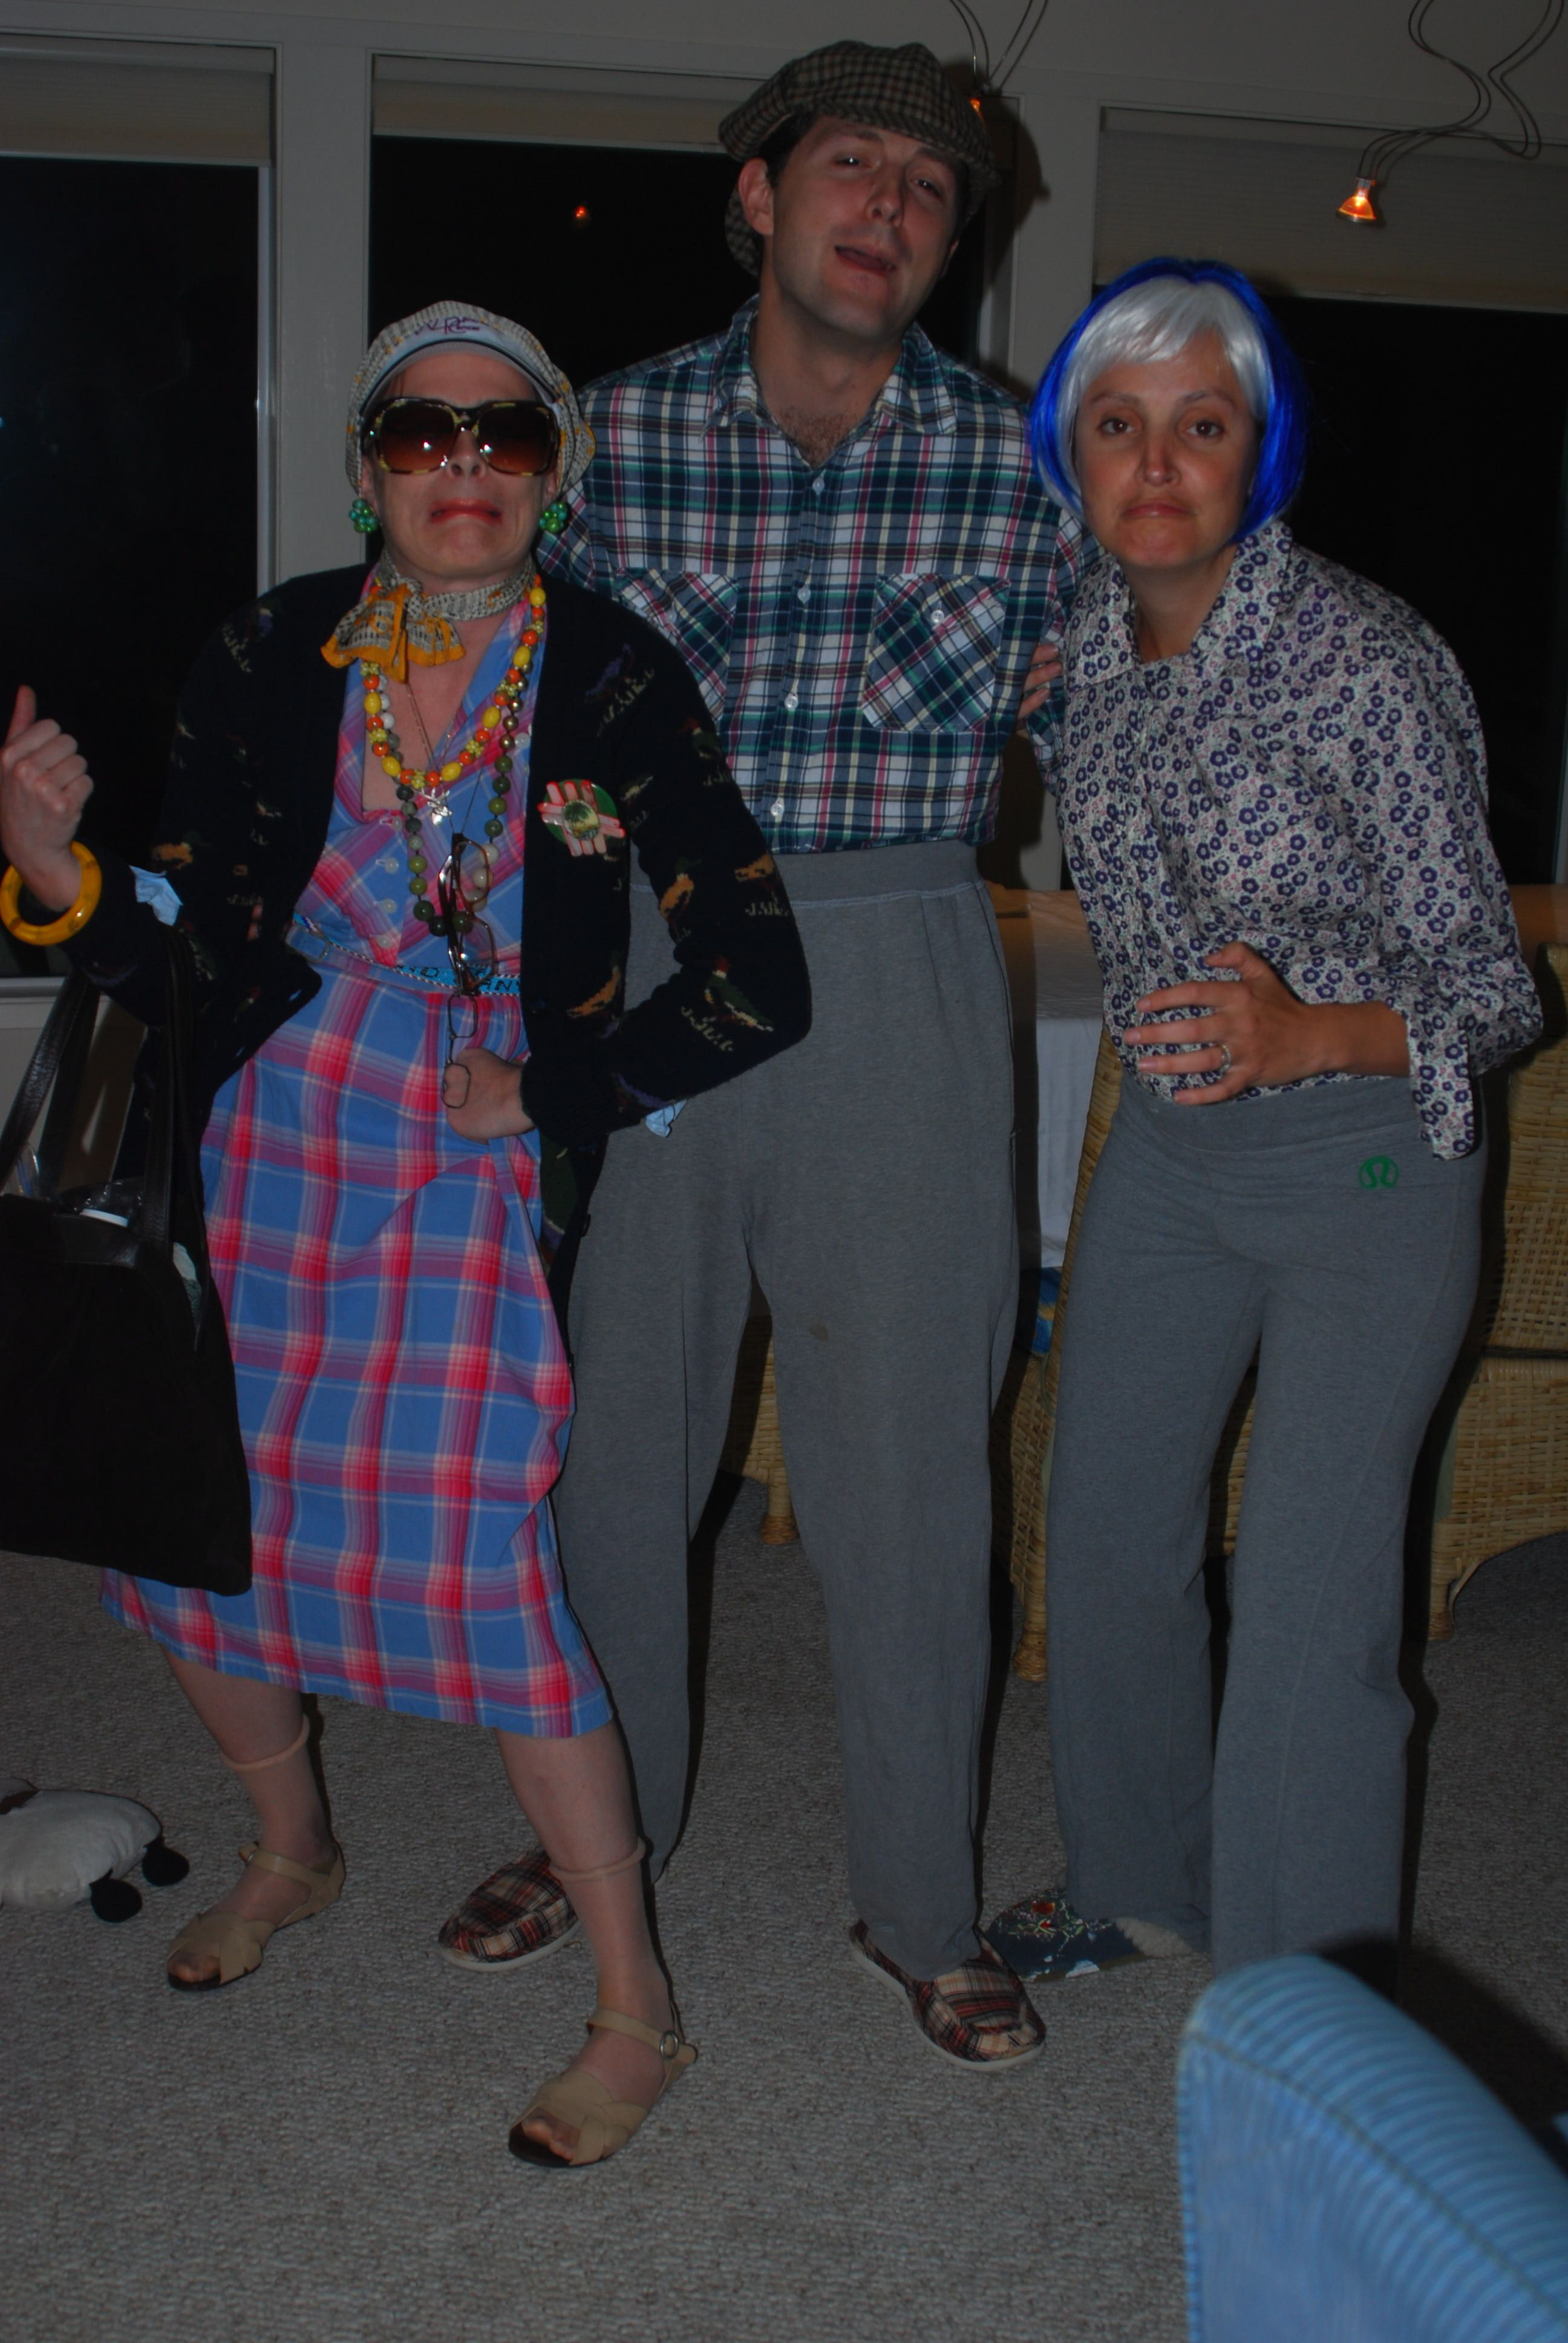 dress like a old person dress like old people. Here